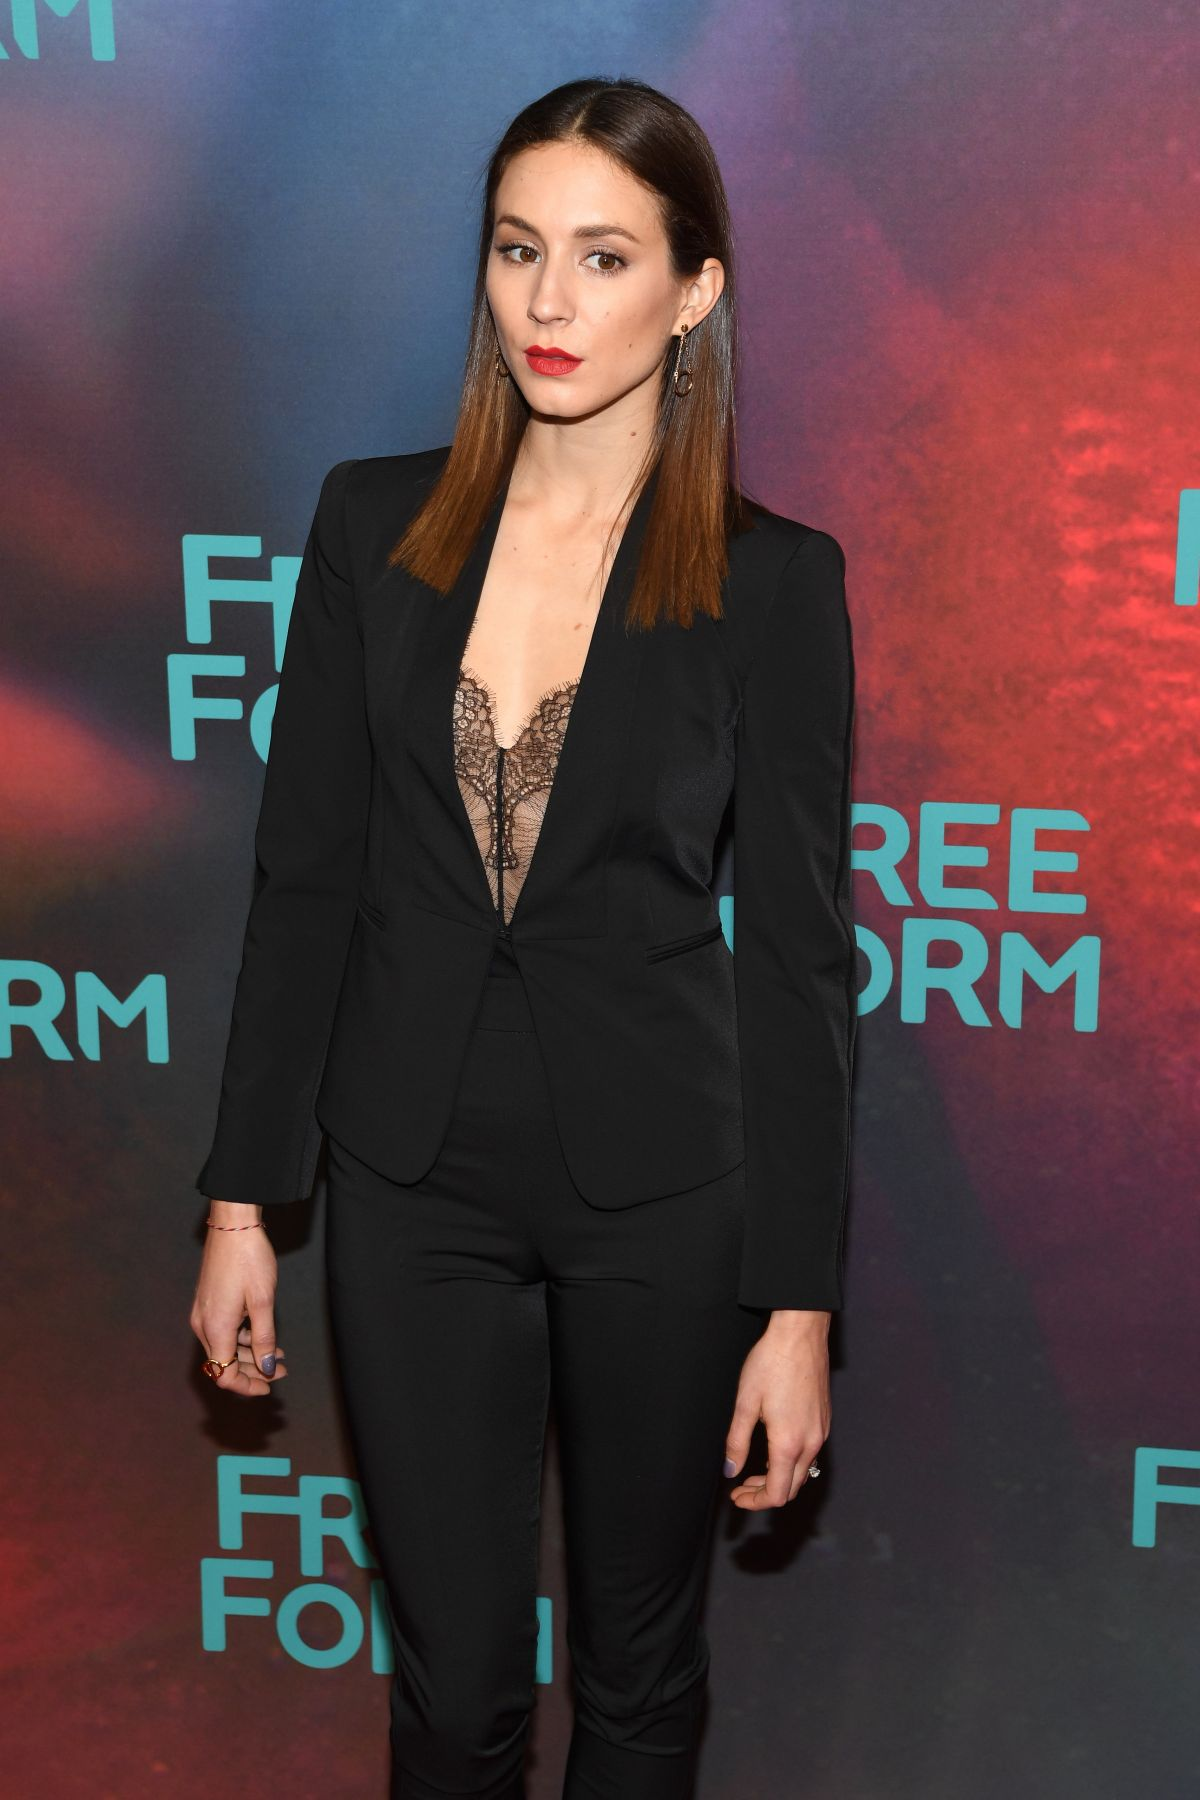 Troian Bellisario At 2017 Freeform Upfront in NYC   troian-bellisario-at-2017-freeform-upfront-in-nyc_9